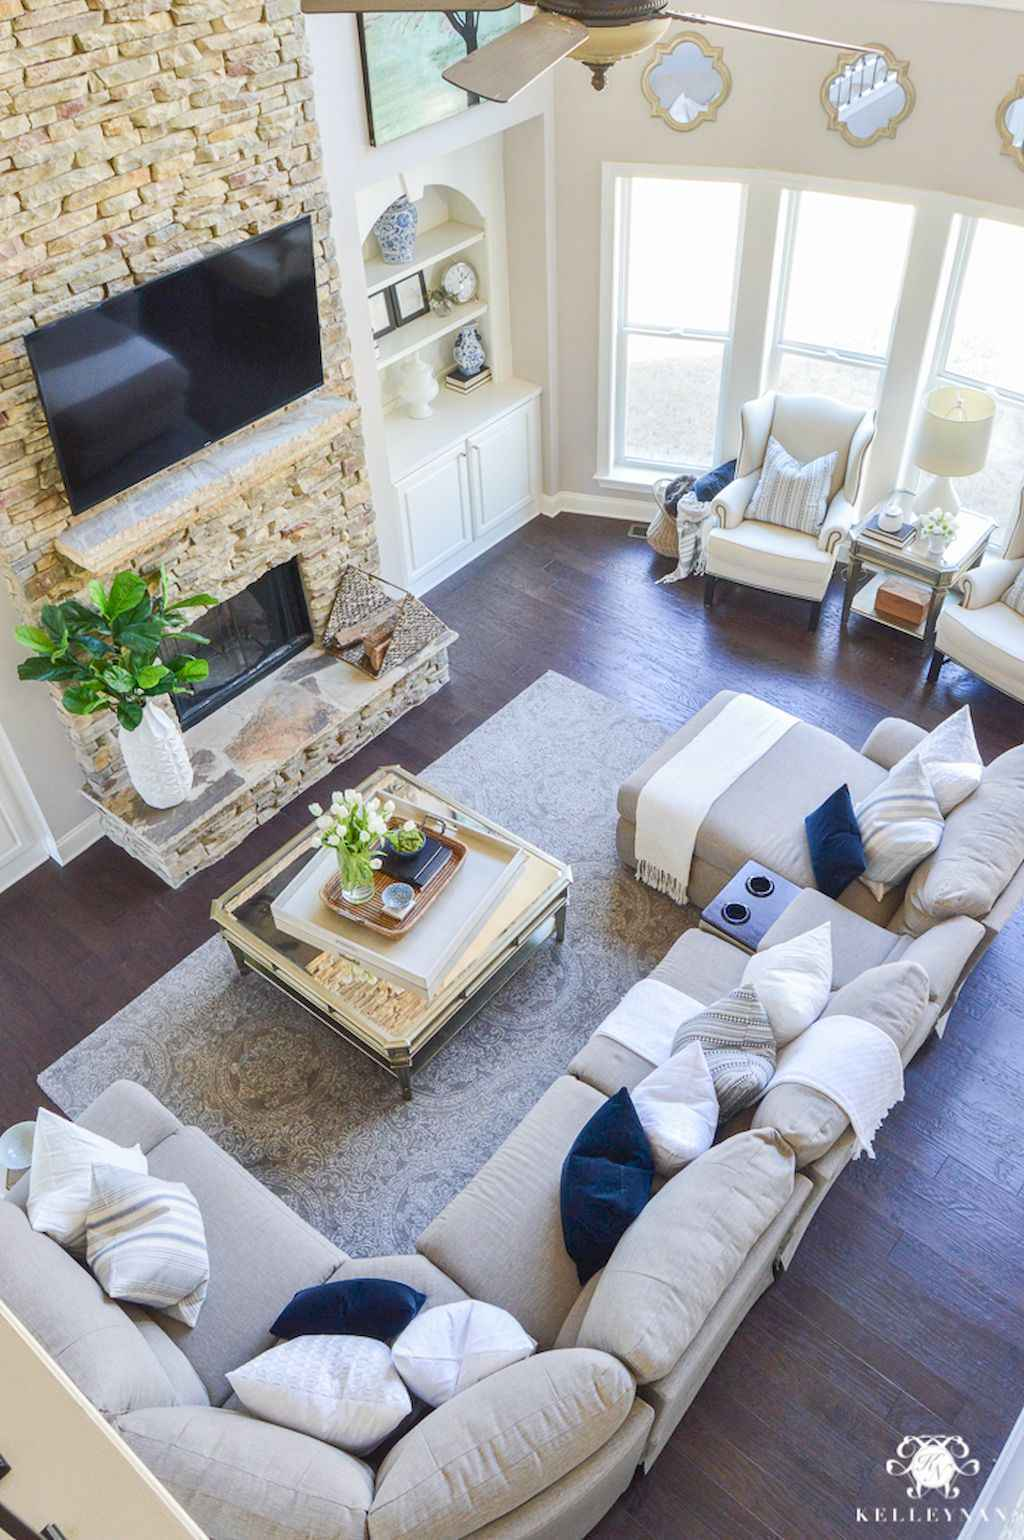 Awesome apartment living room decorating ideas (36)